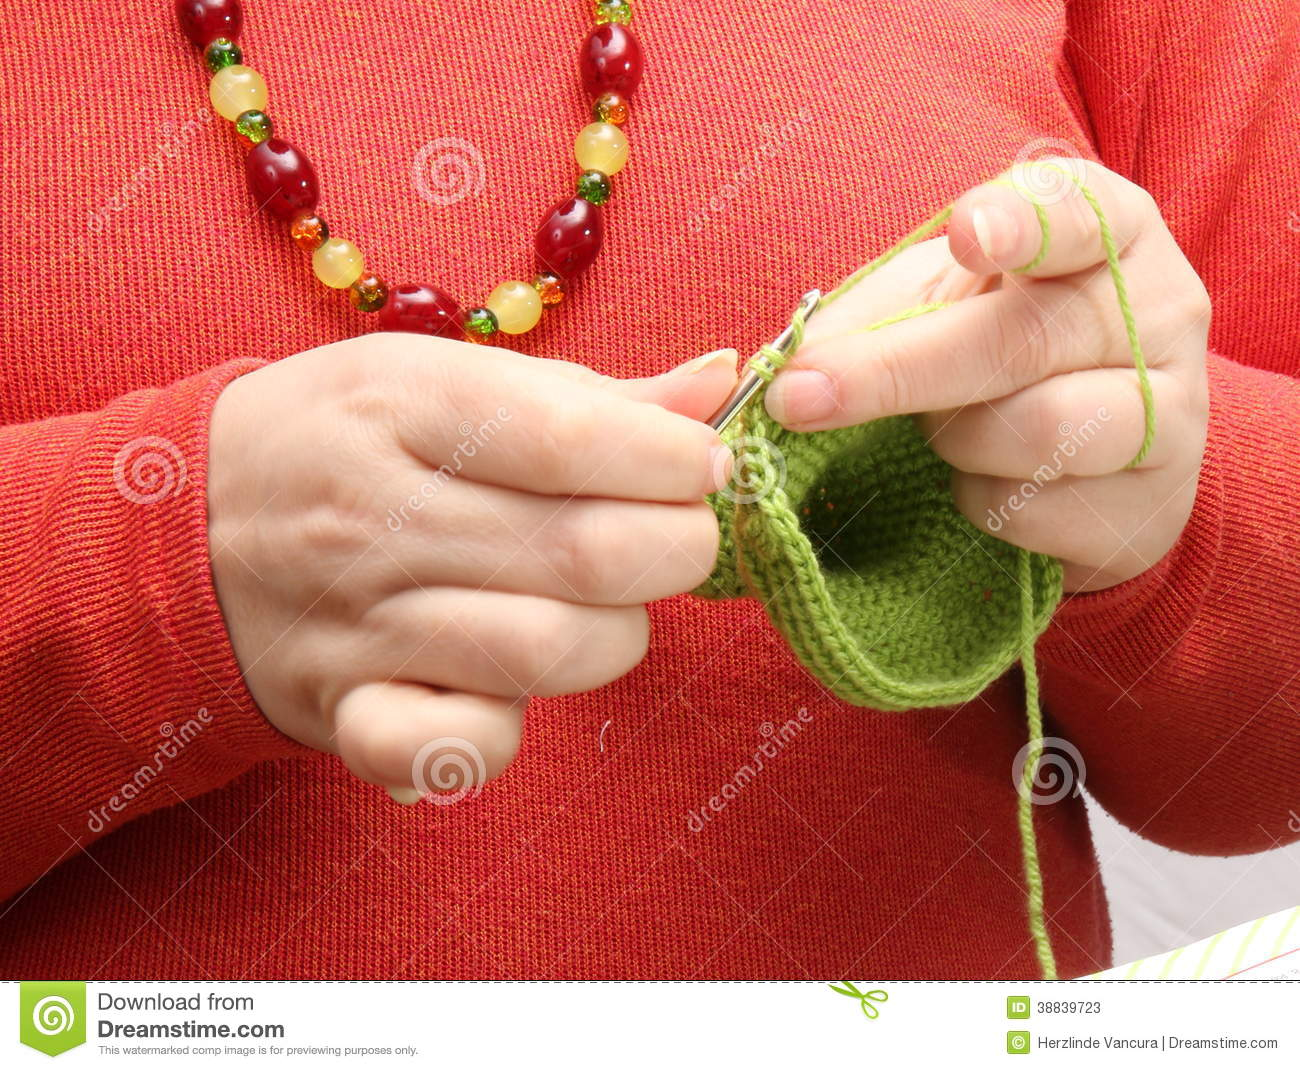 Crocheting Using Your Hands : Womans hands crocheting with green yarn and crochet hook.